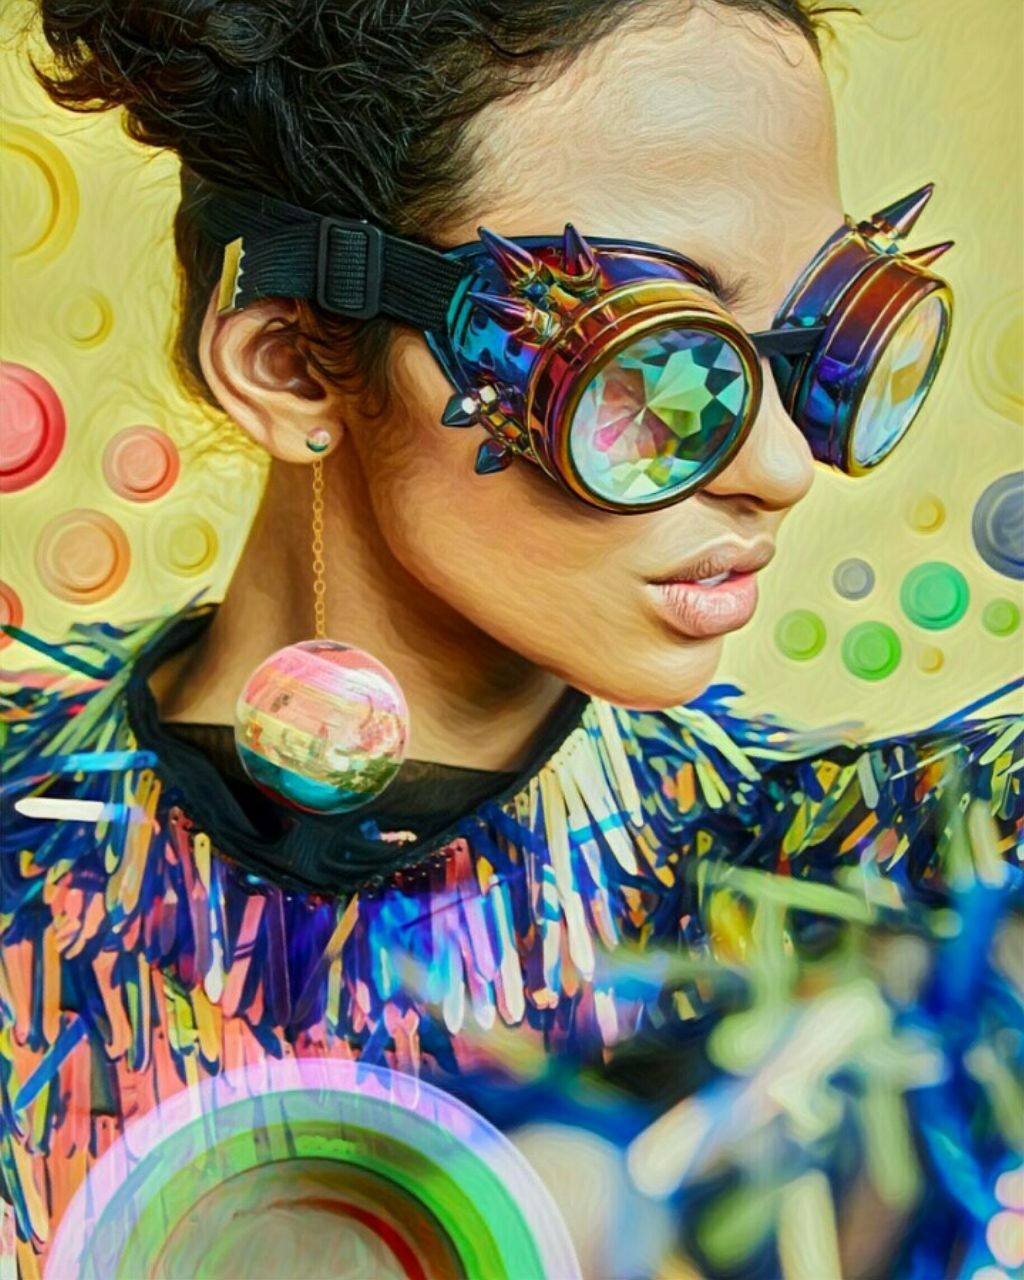 A Rainbow Day #freetoedit #simplyyellow #woman #glasses #colourful #discoball